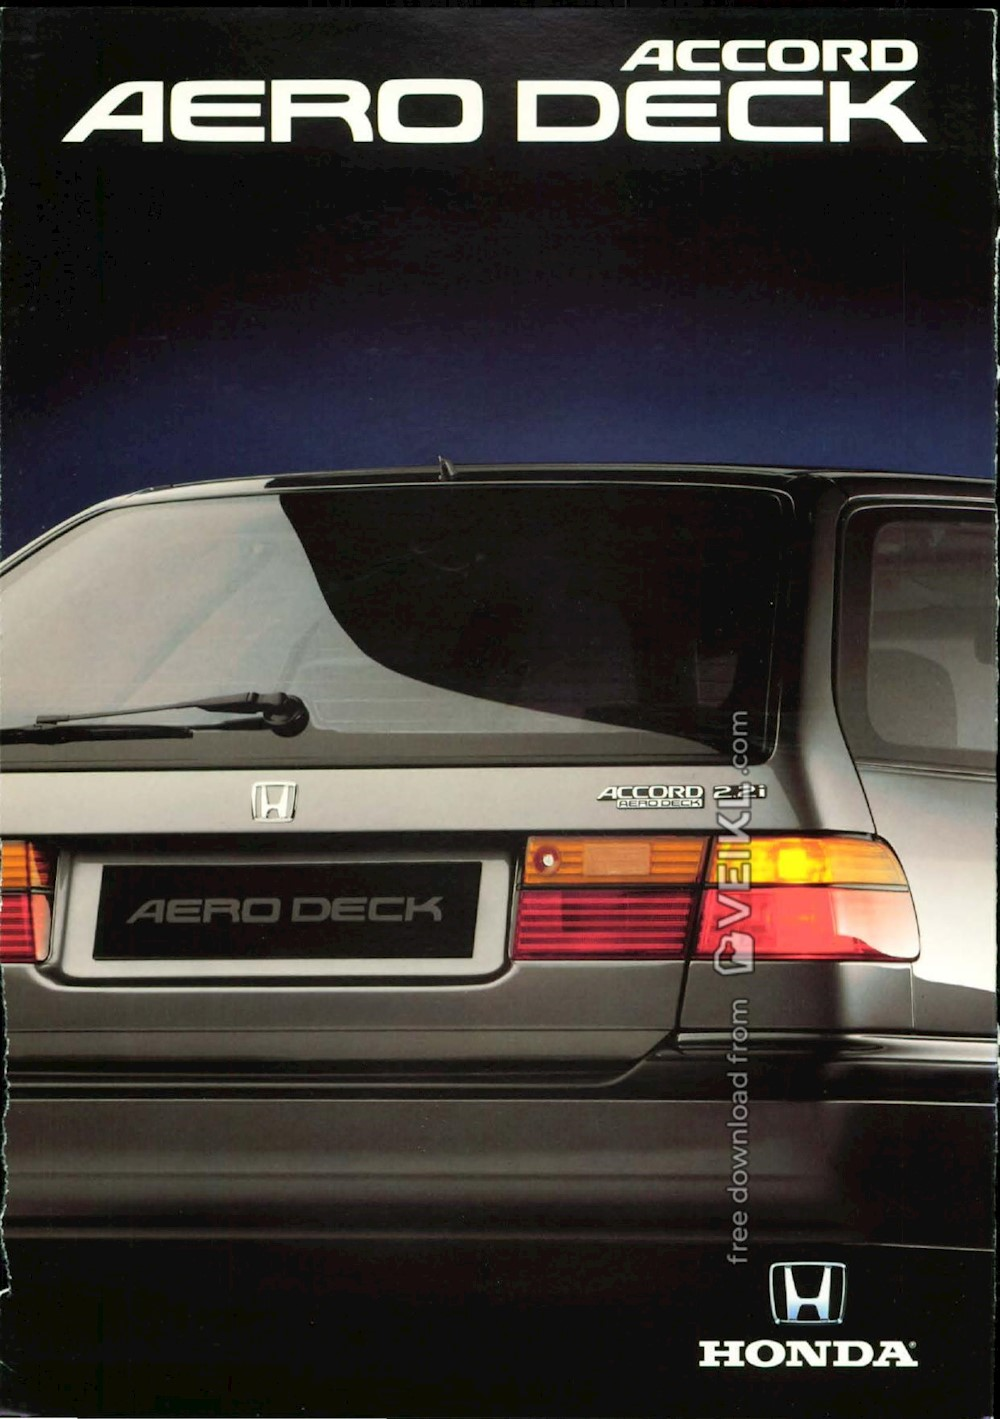 Honda Accord Aero Deck Brochure 1993 NL